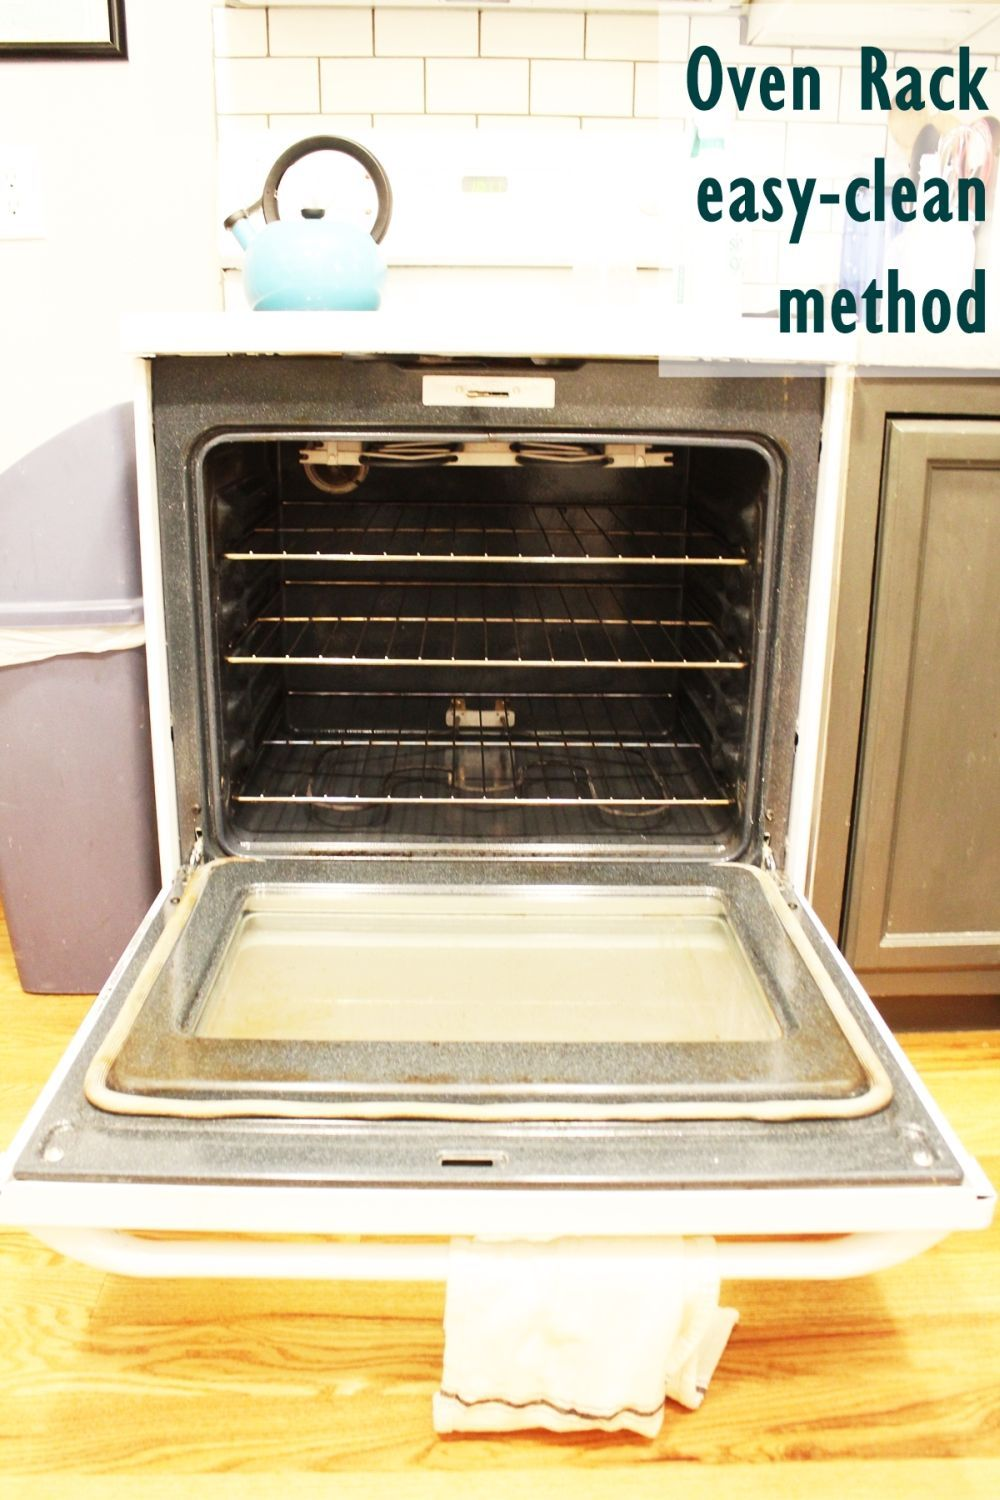 Cleaning Oven Racks Make Your Oven FoodSafe Again